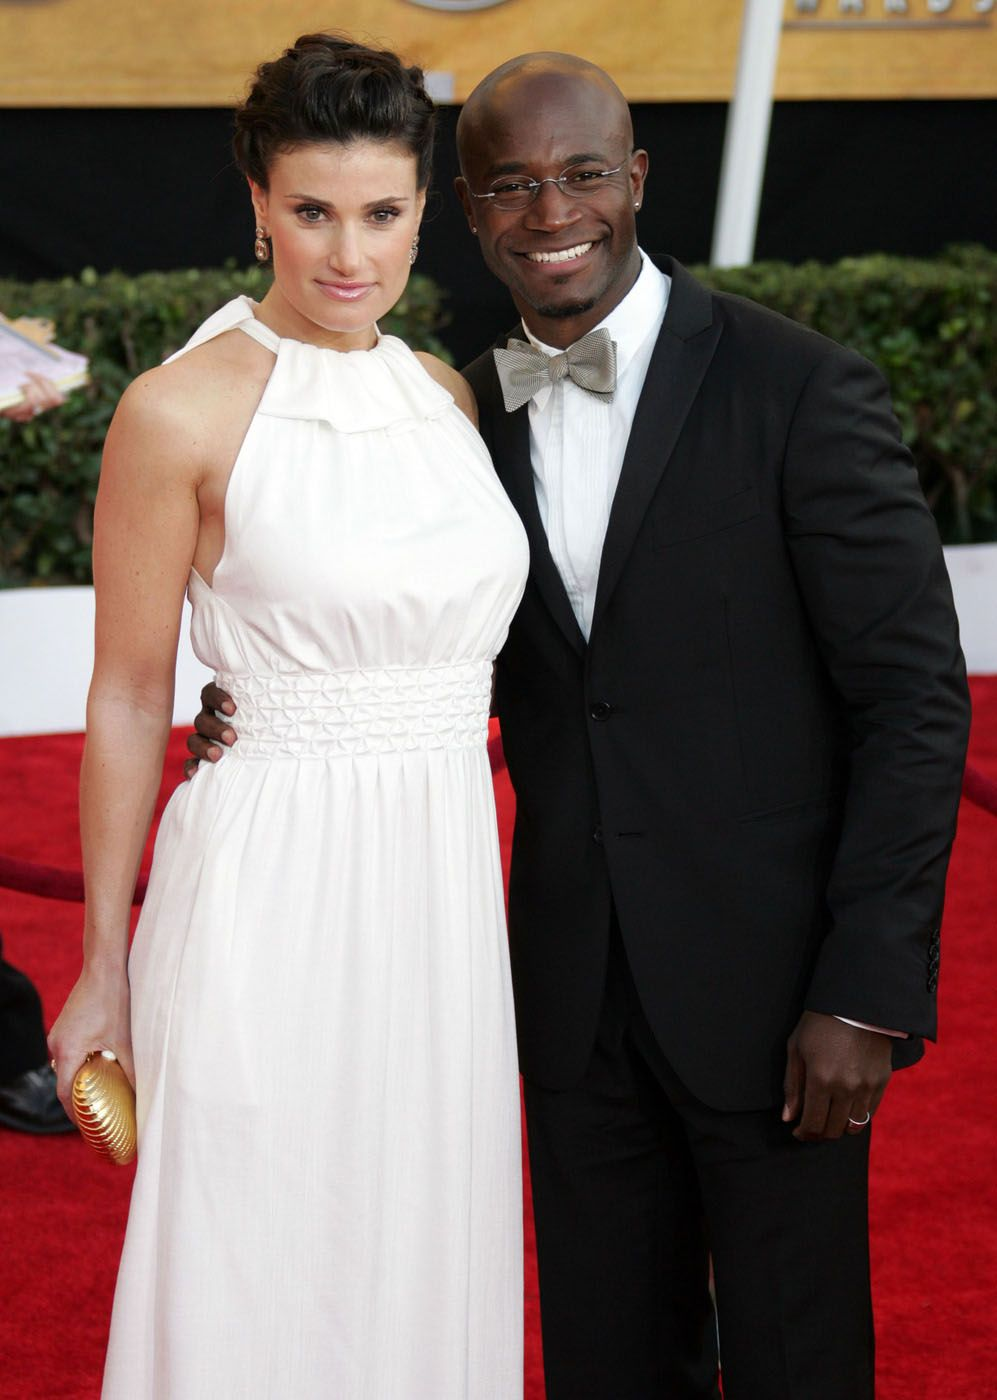 Black Celebrities Married to White Spouses - YouTube